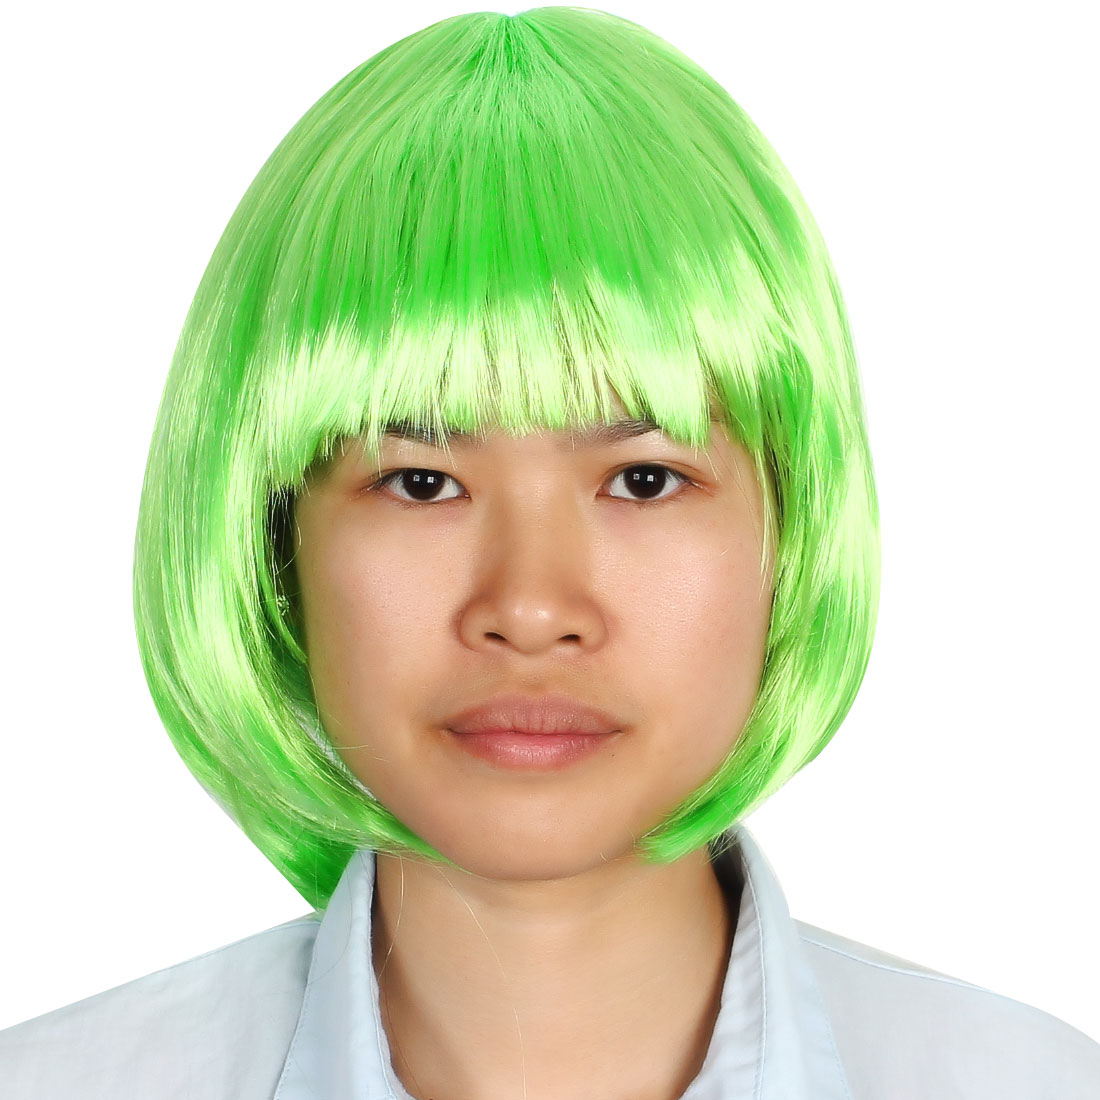 Ladies Woman Short Cut Straight Hairpiece Flat Bangs Hair Play Costume Full Wig Party Light Green